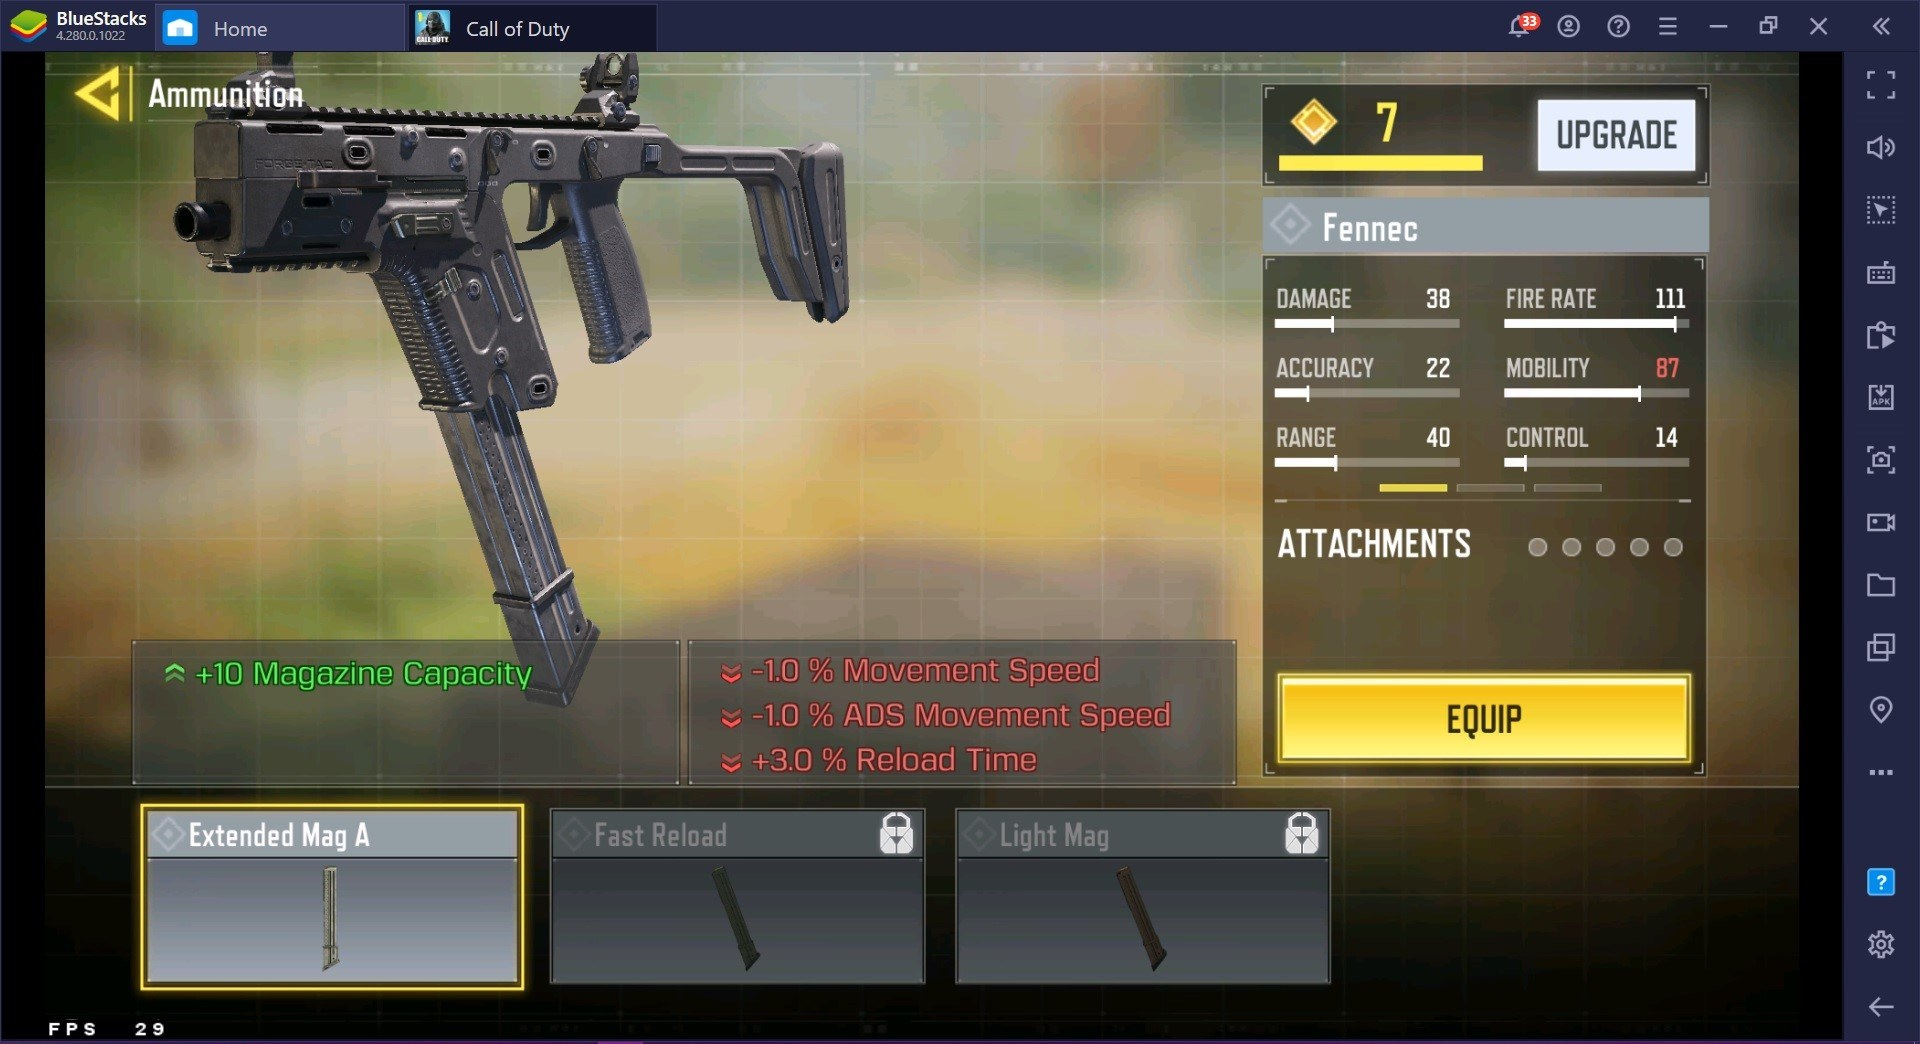 Call of Duty: Mobile Fennec Weapon Guide – Season 3 Made It Better